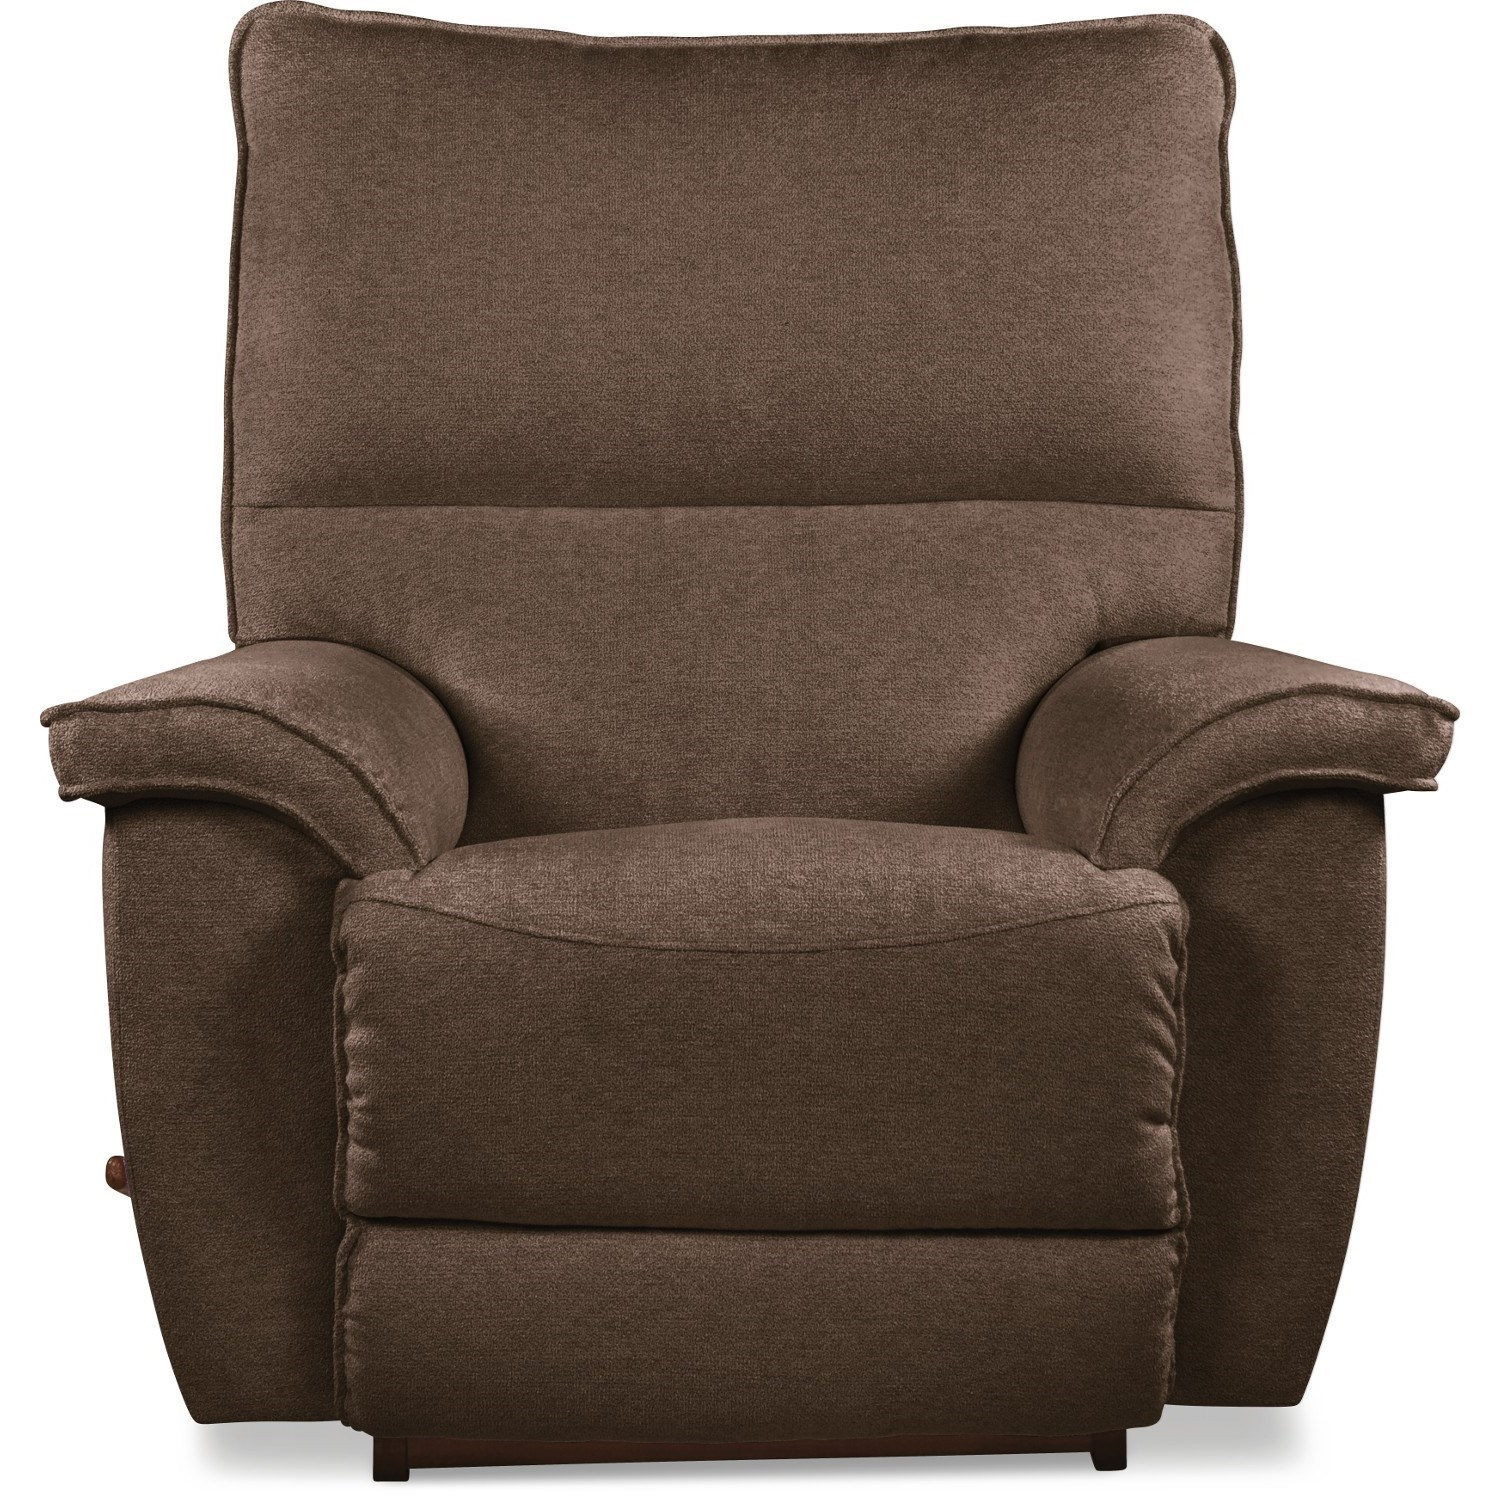 Norris Rocking Recliner by La-Z-Boy at Home Furnishings Direct